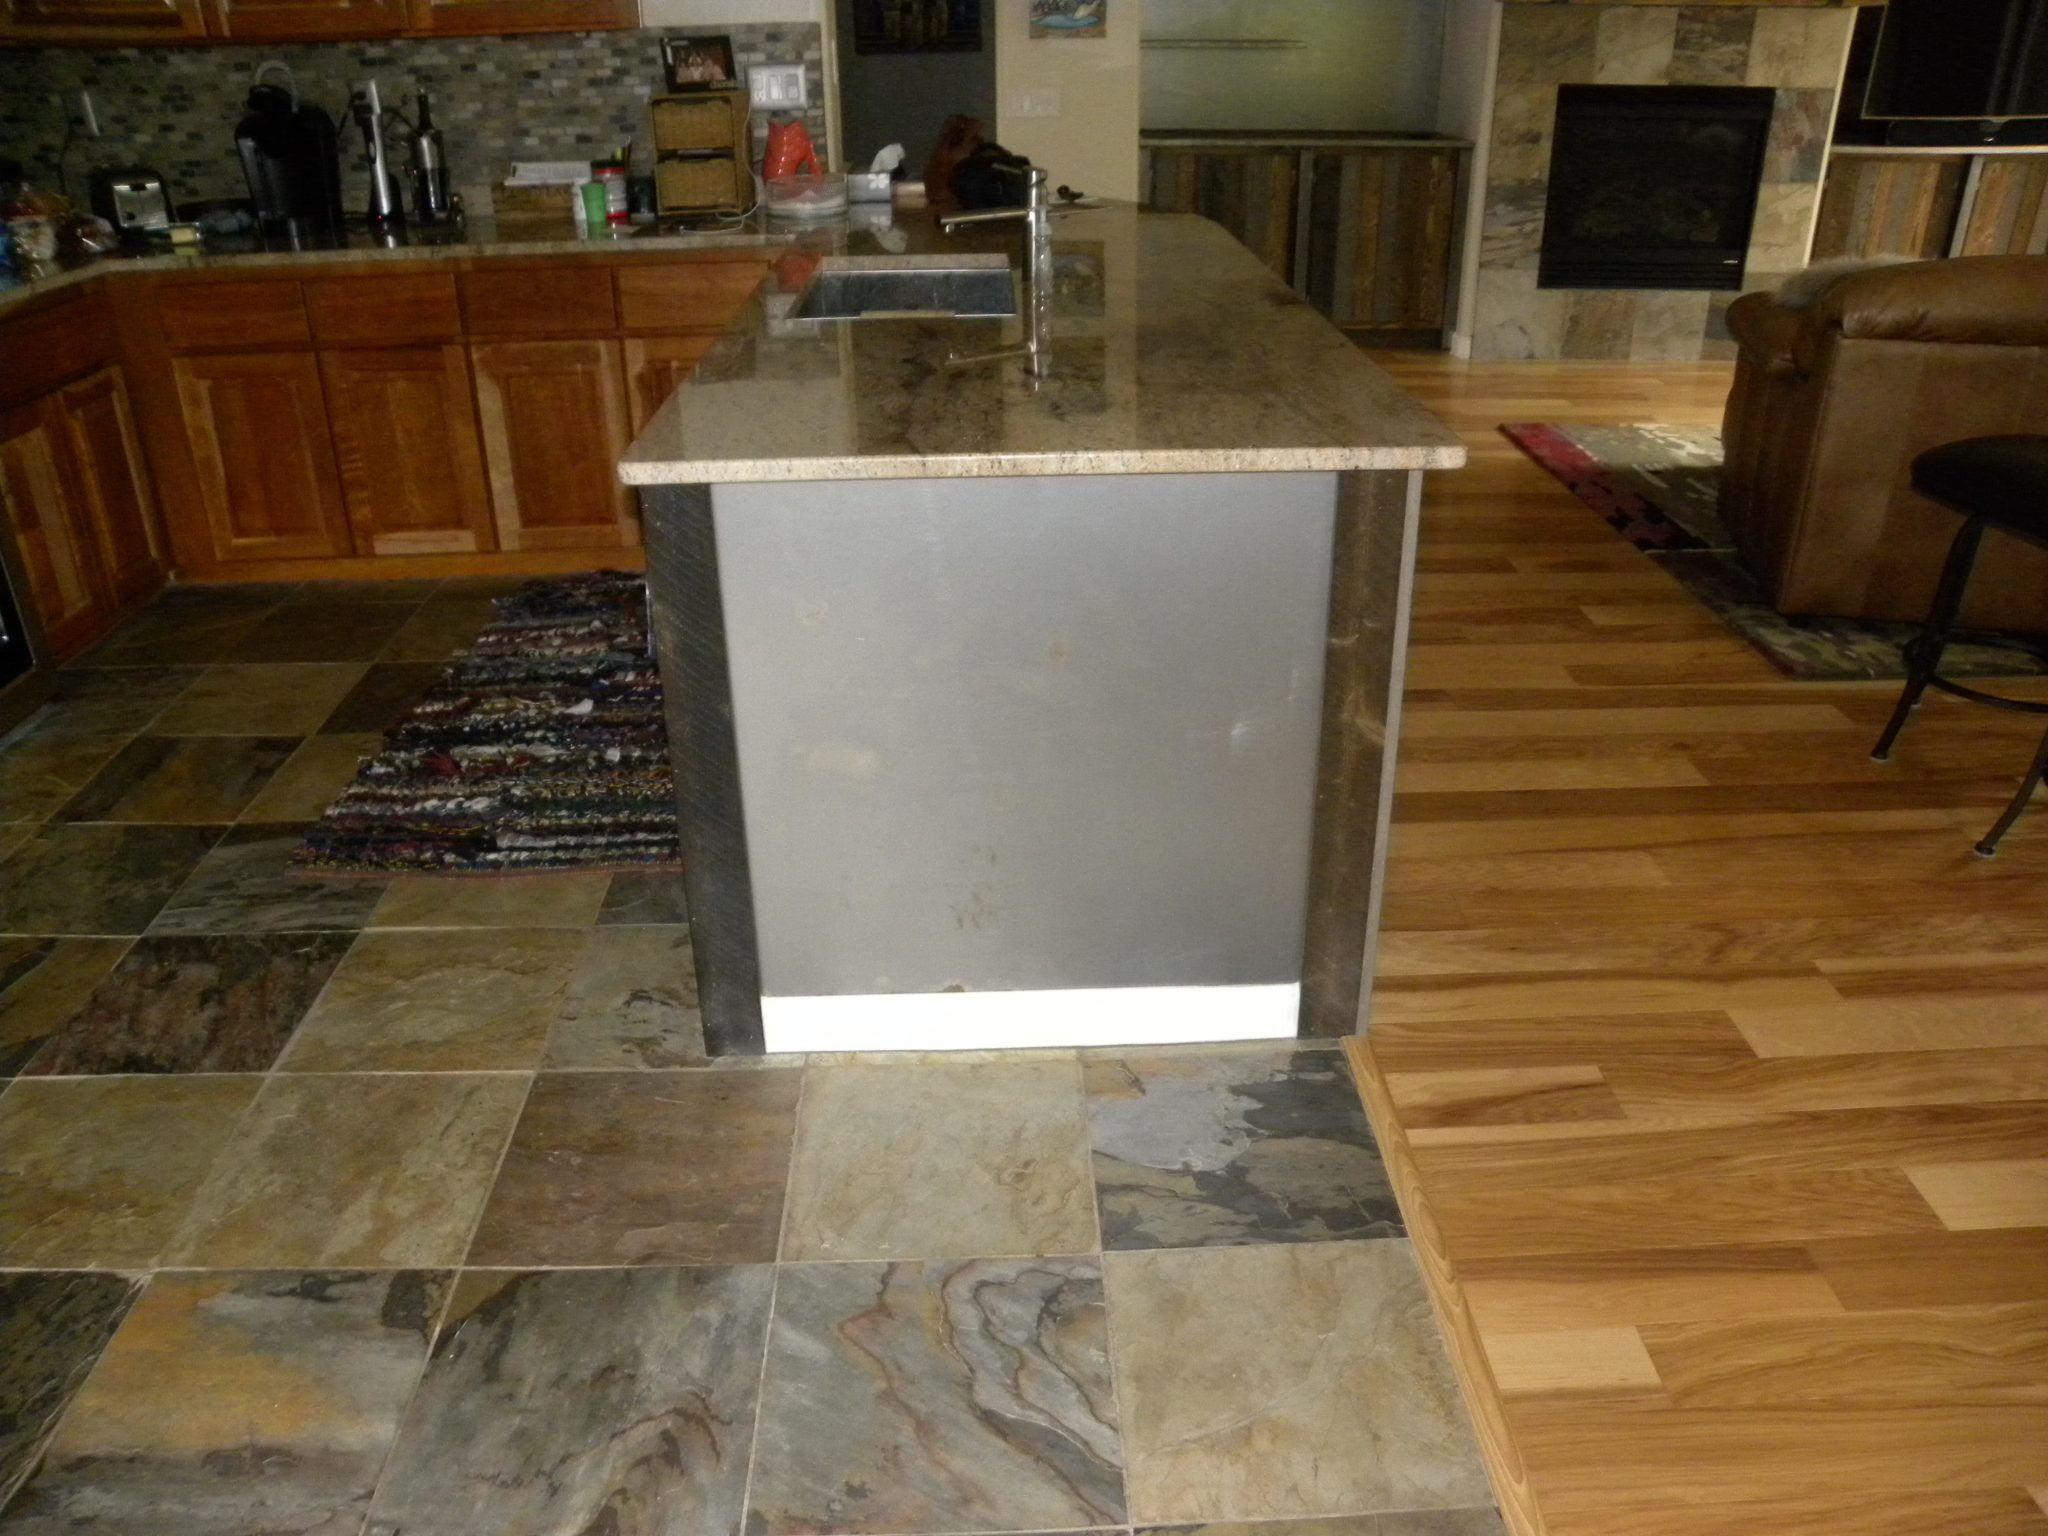 Newly remodeled kitchen with tile flooting, granite countertops, and wooden cabinets